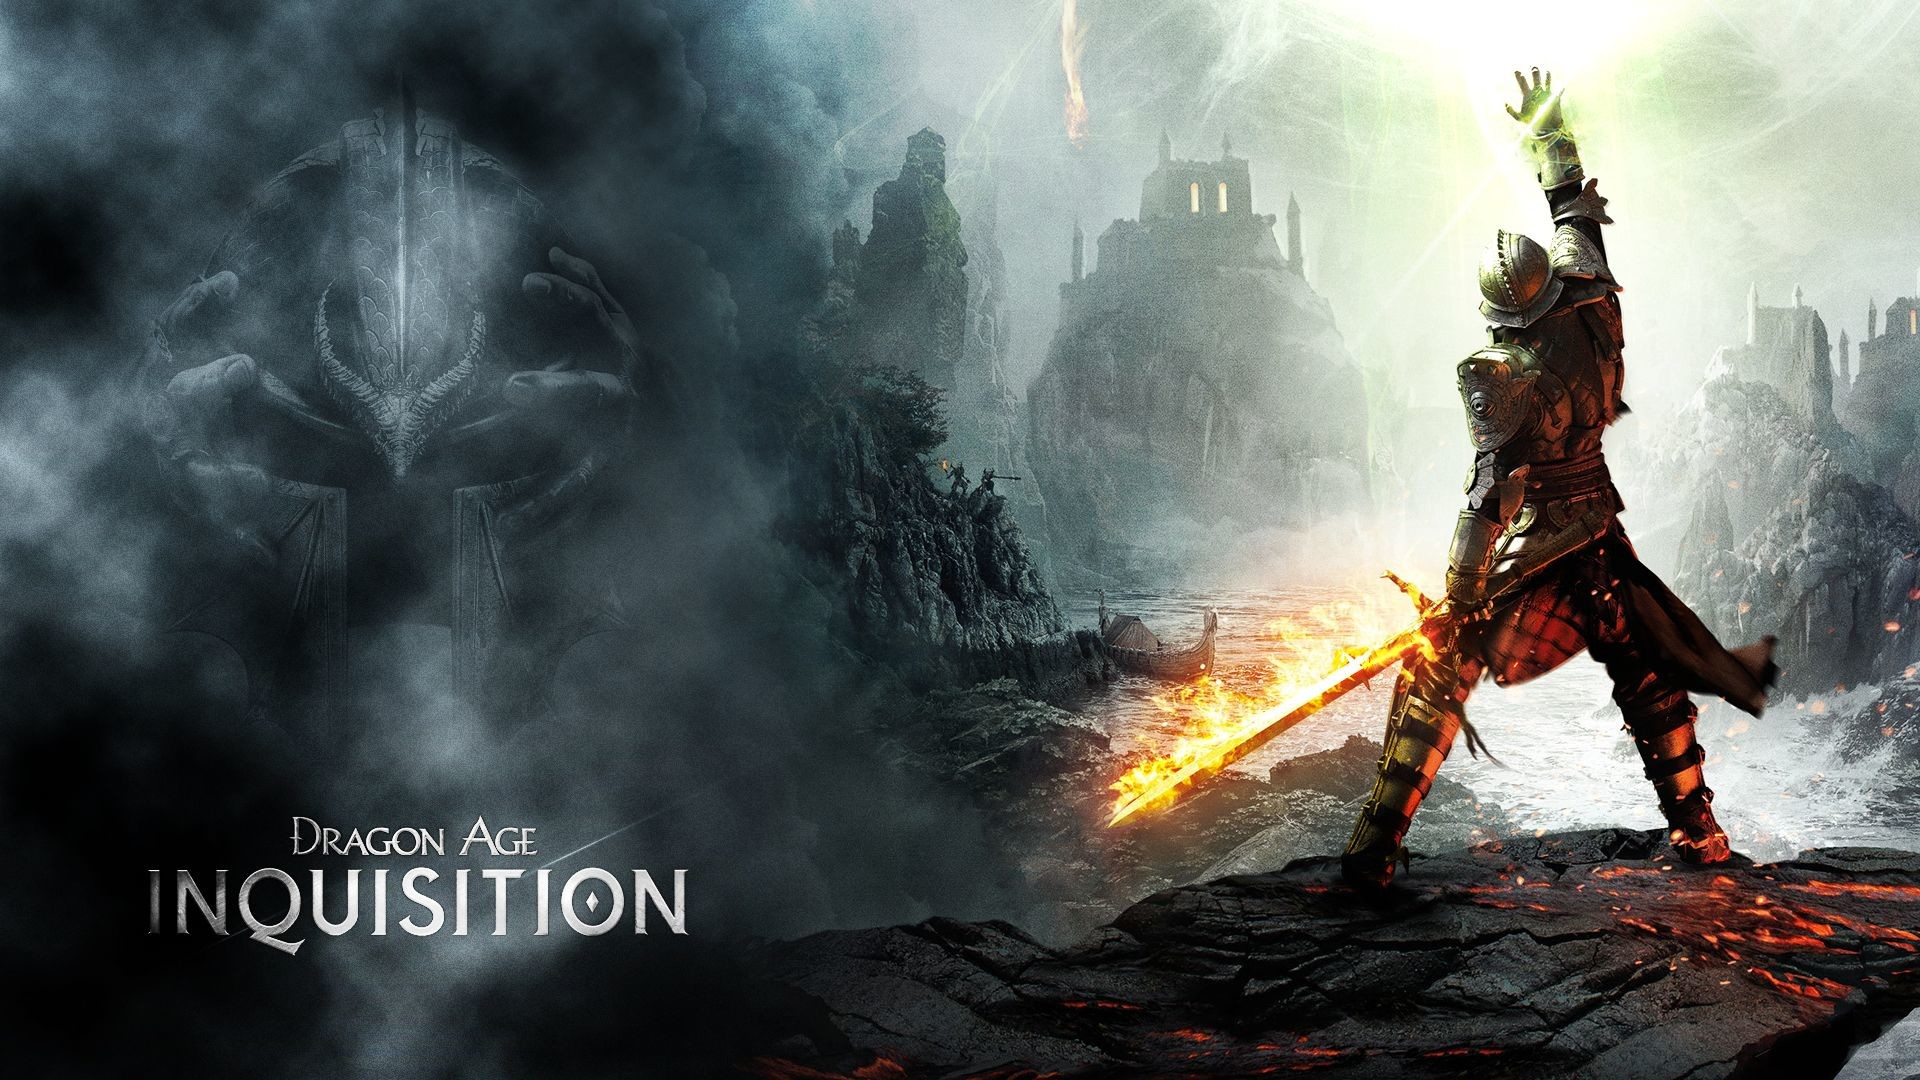 Dragon age inquisition wallpapers 1920x1080 89 images - Dragon age inquisition wallpaper 4k ...